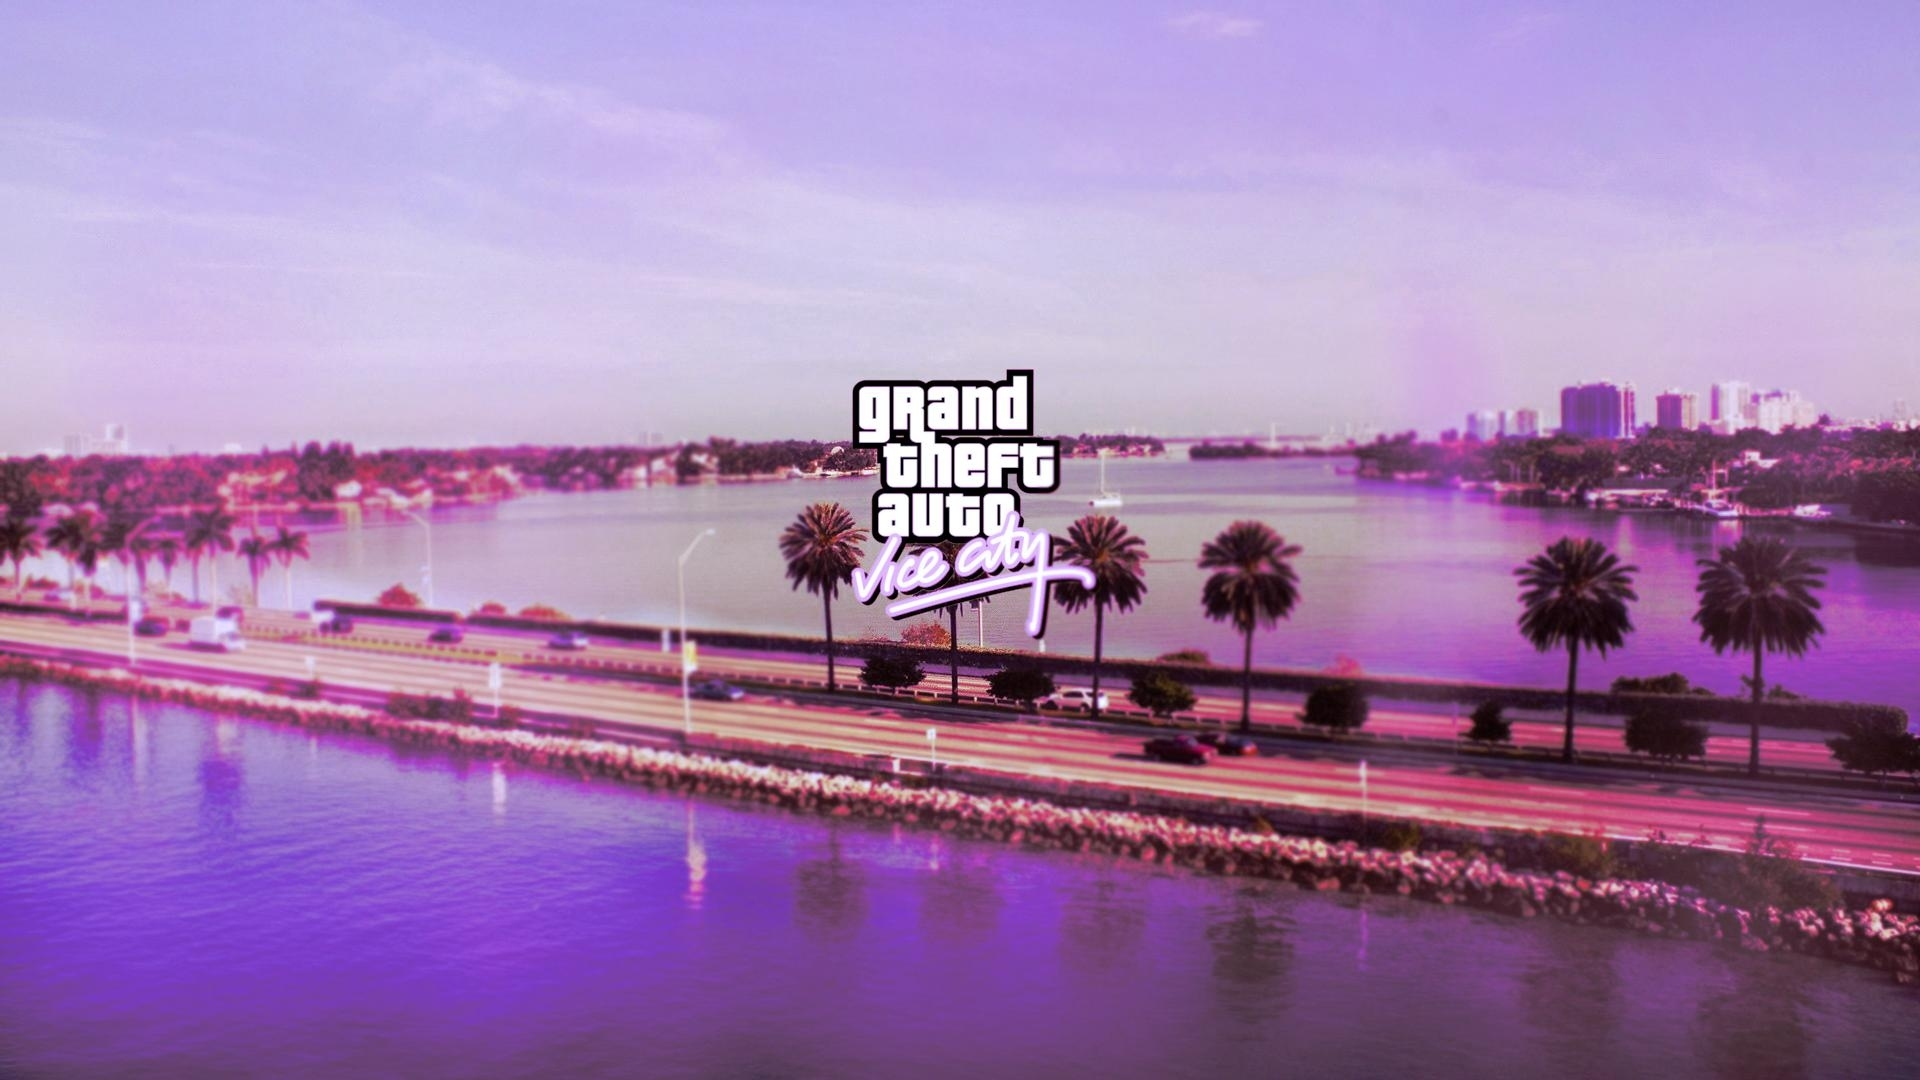 gta vice city wallpaper i made for my friend - imgur